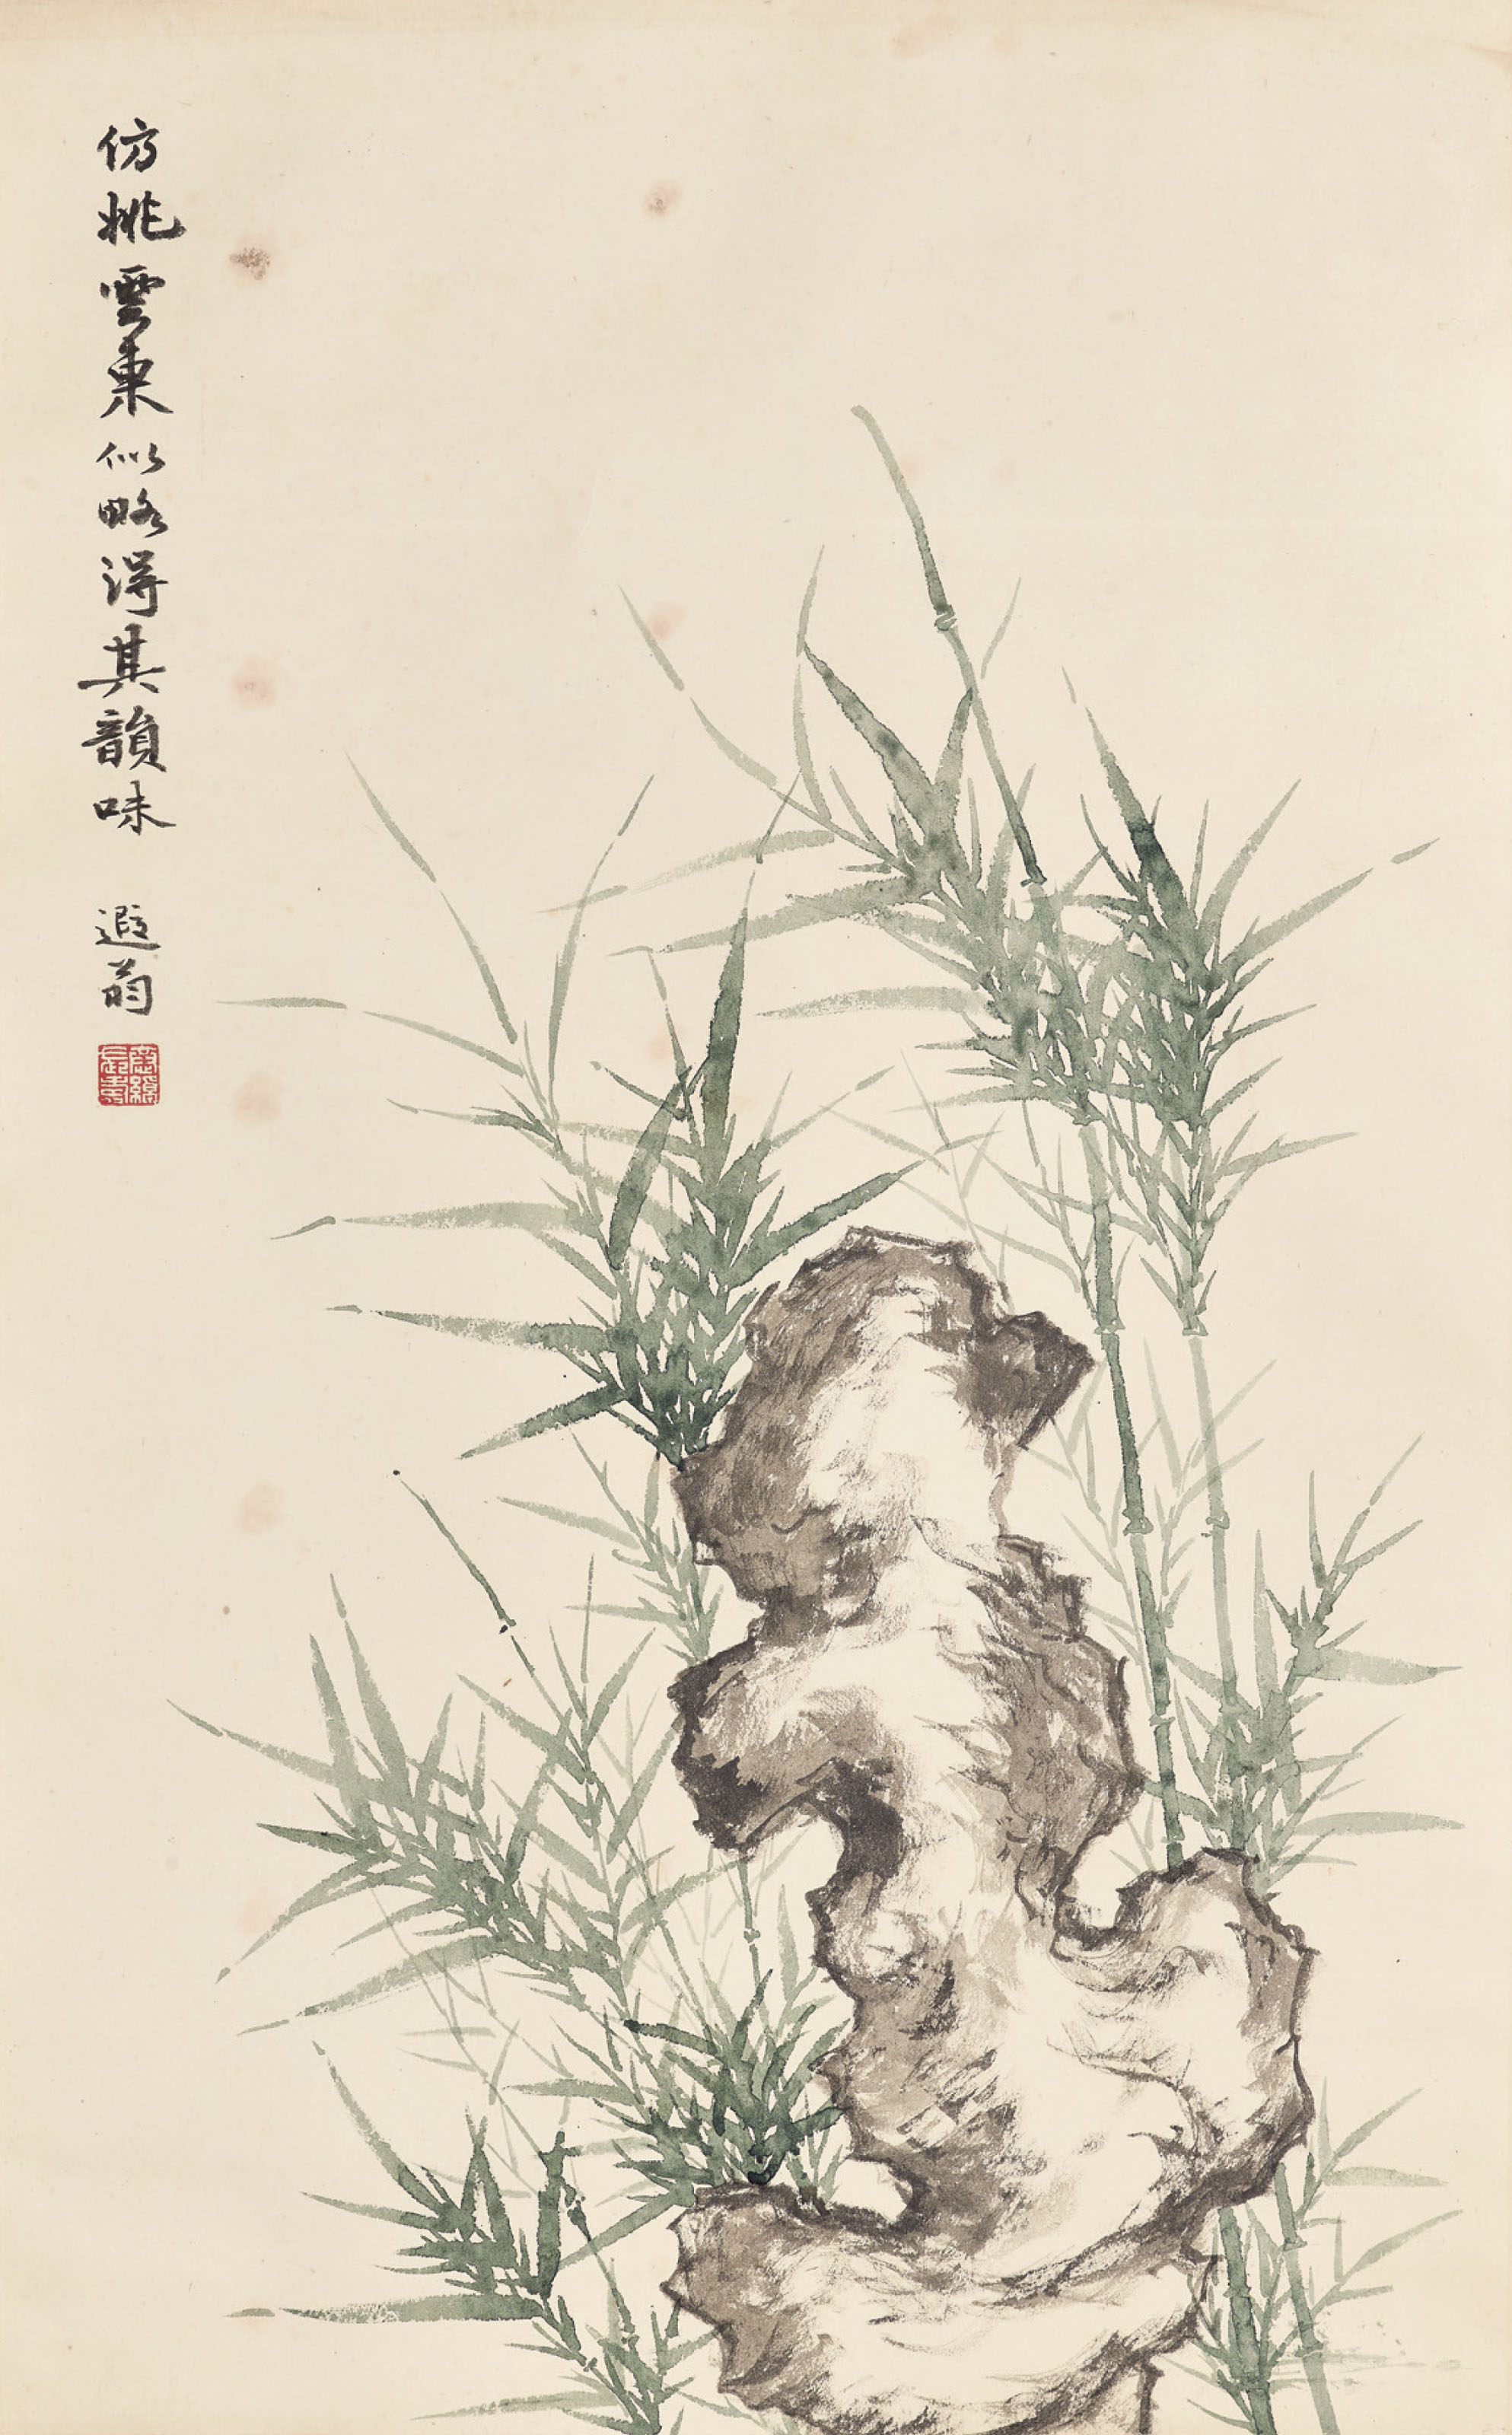 Bamboo and Rock